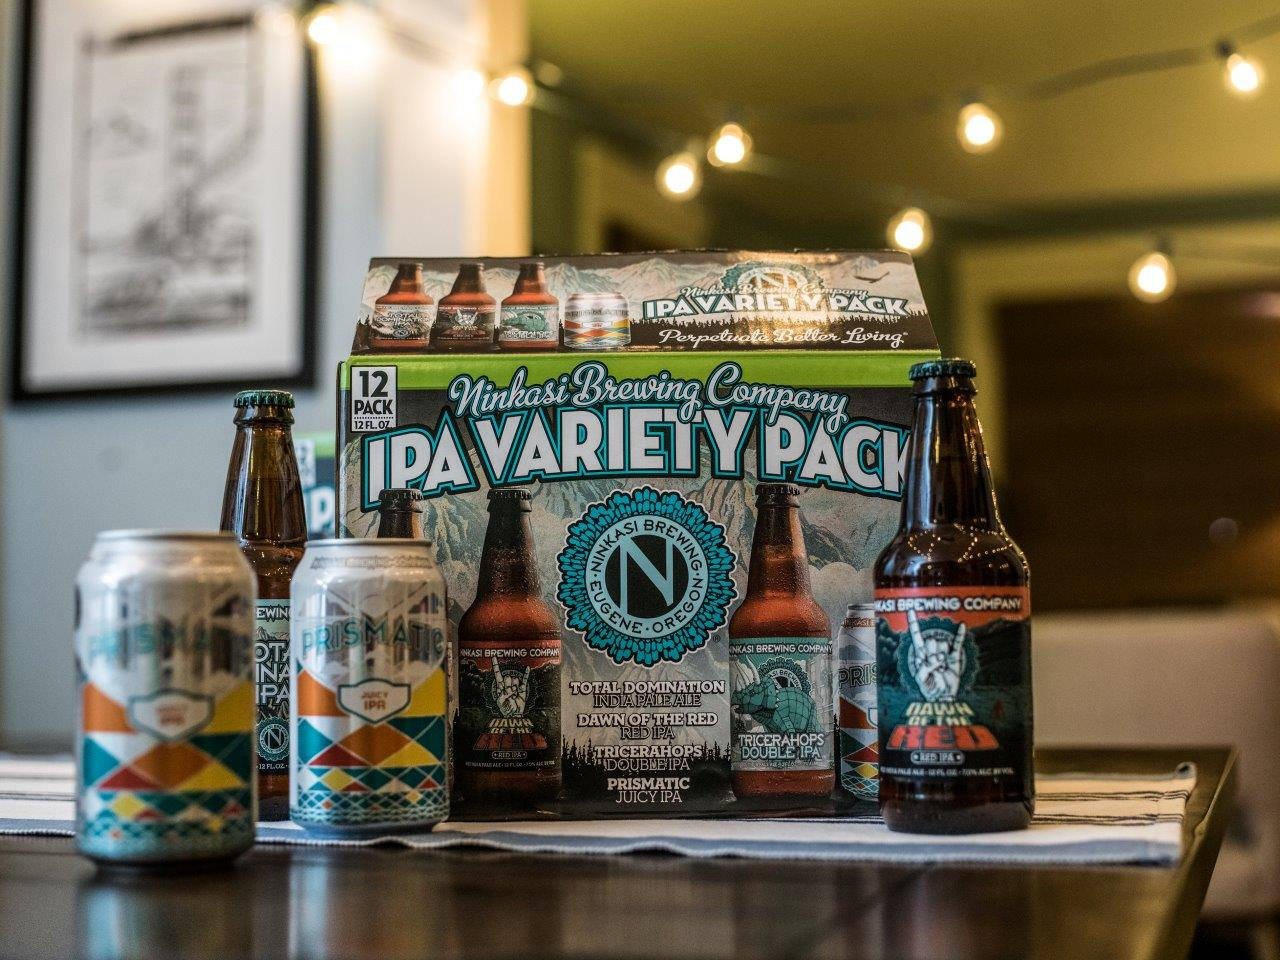 image courtesy of Ninkasi Brewing